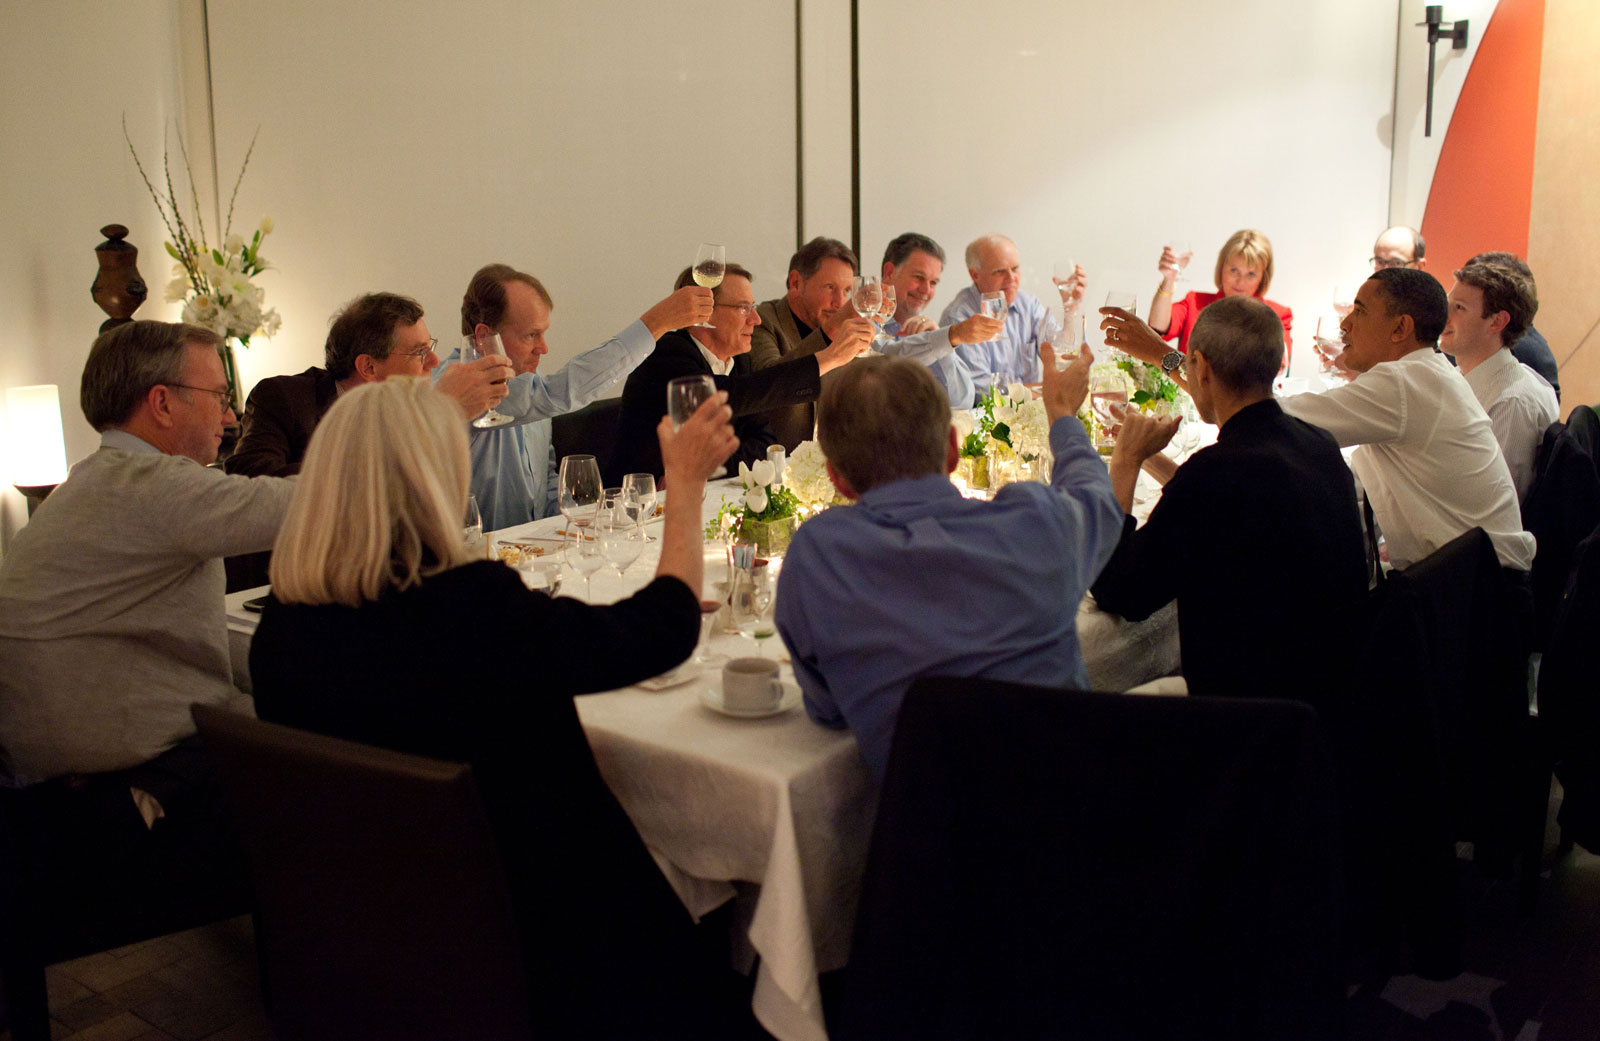 Obama&#8217;s $1 Trillion Silicon Valley Dinner